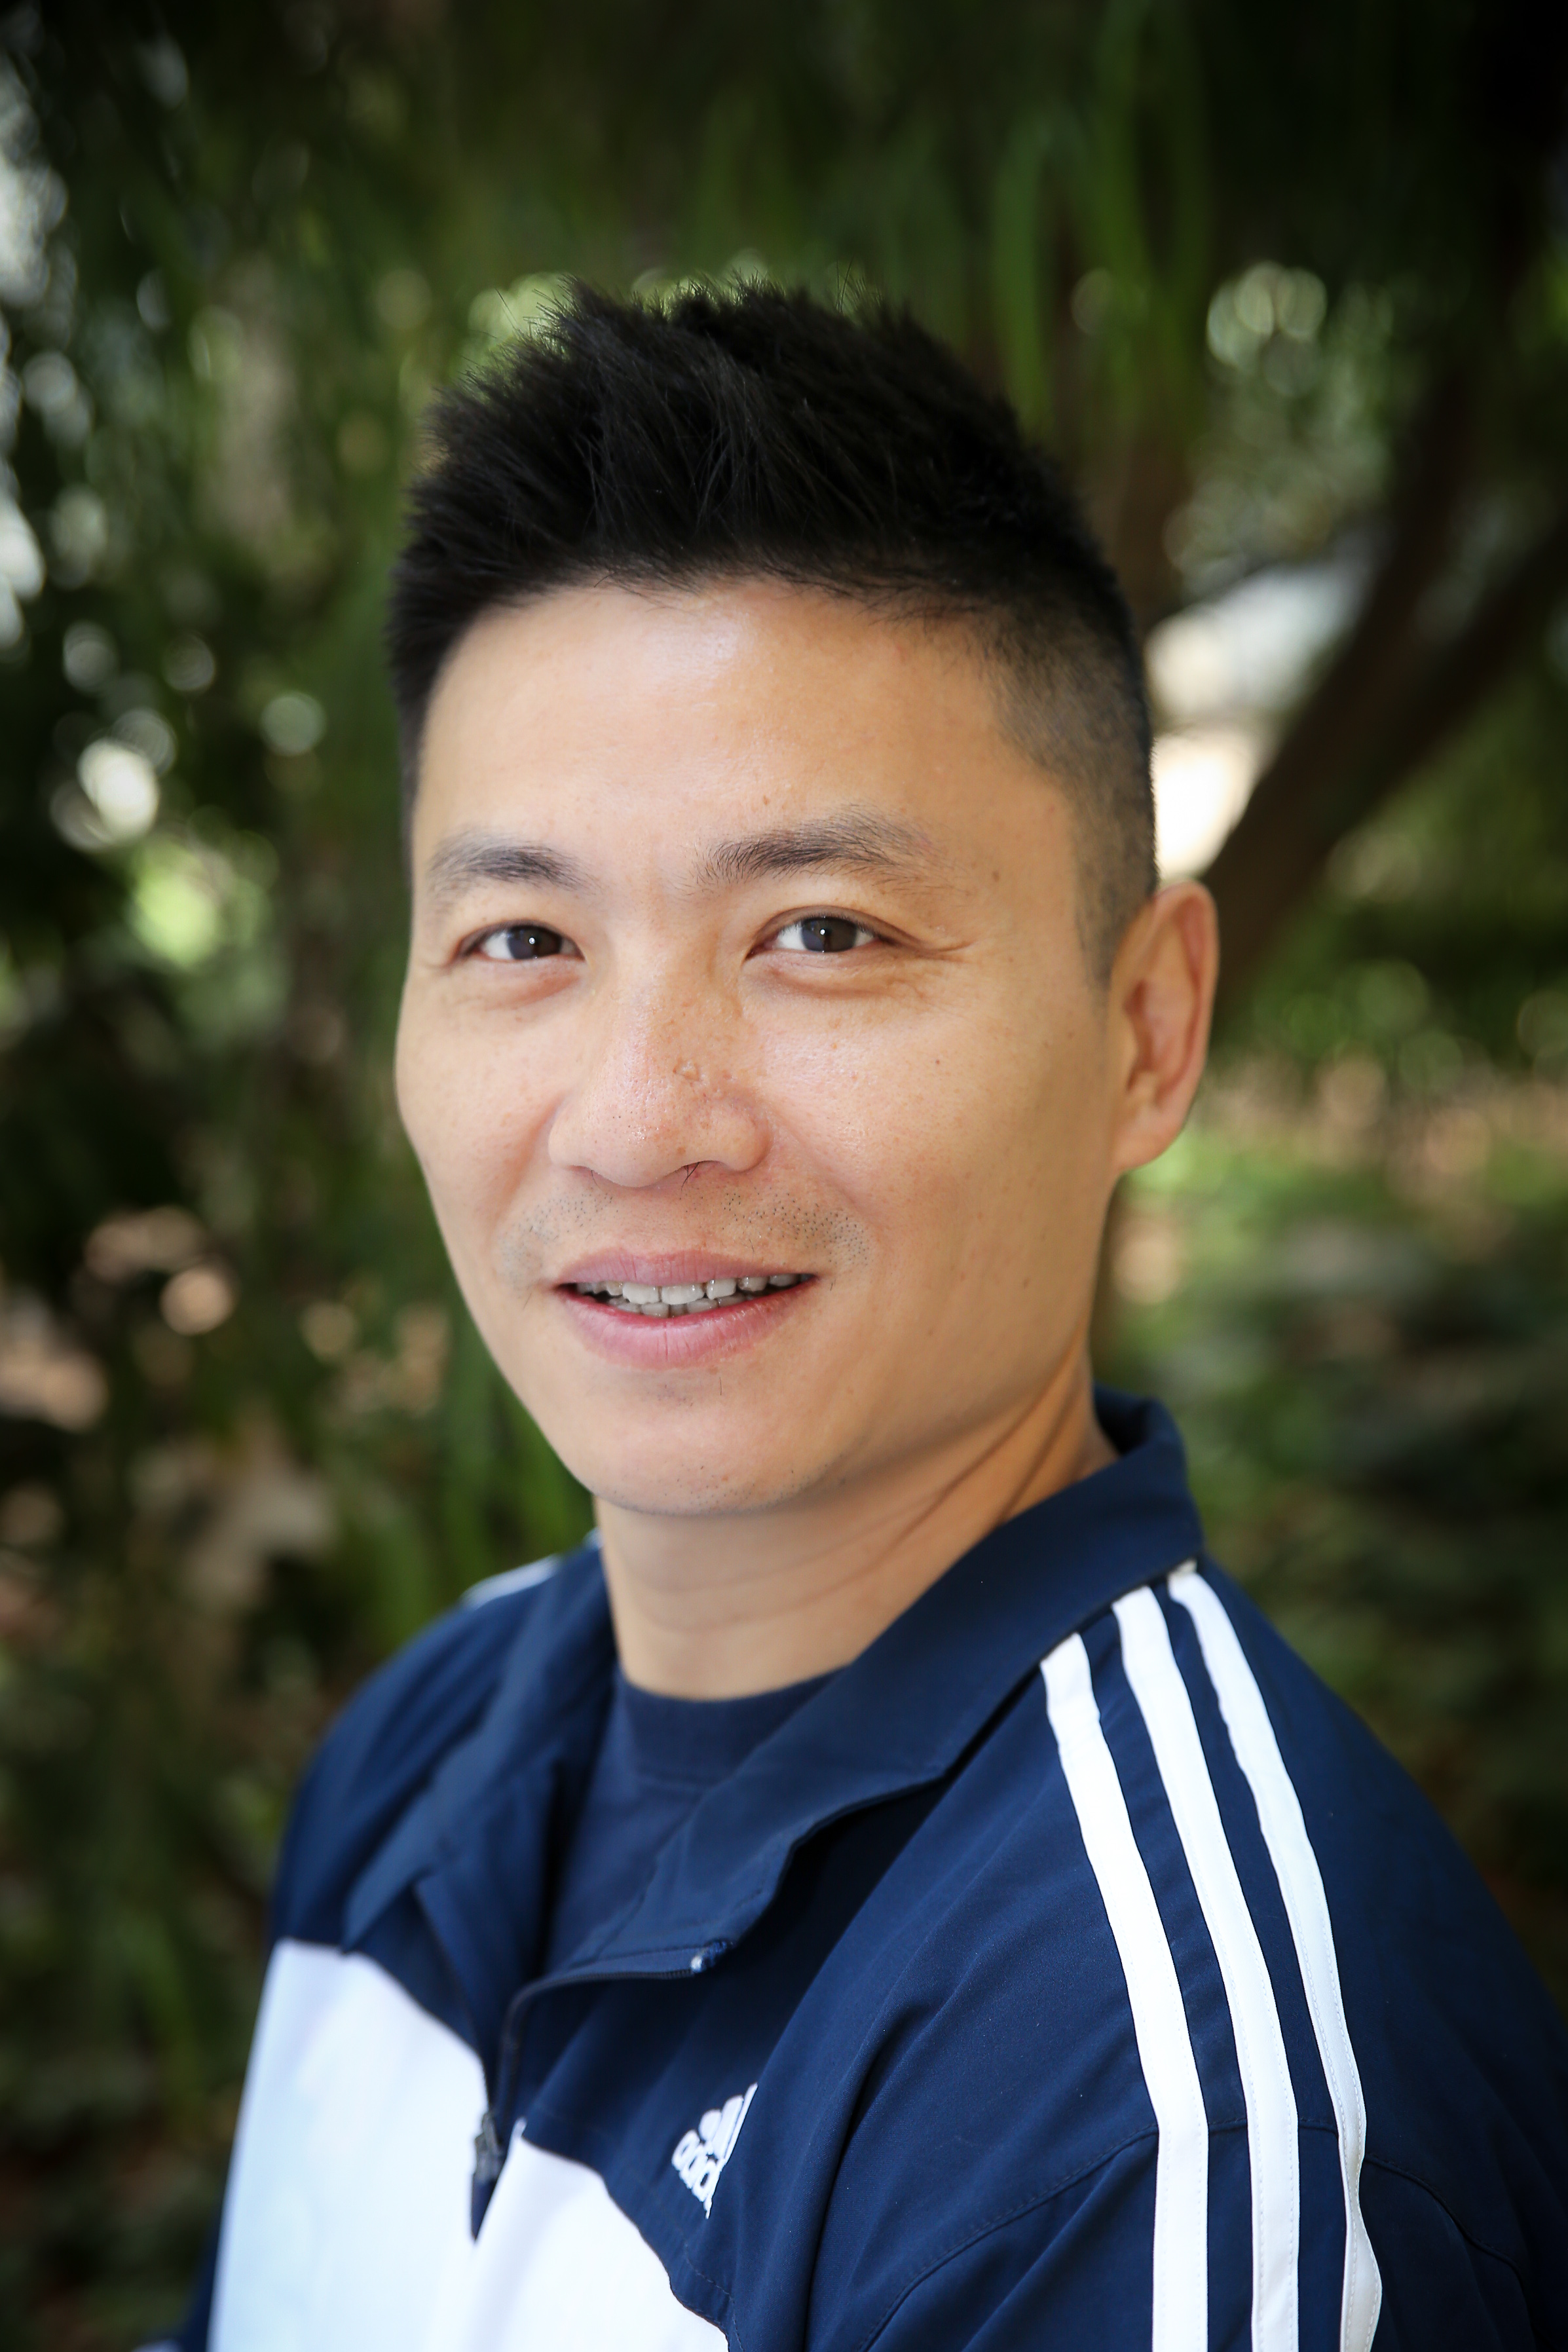 JamesZhong - James coached the Hong Kong gymnastics team that went to the 2012 London Olympics and 2011 World University Games.Former Chinese National Team Gymnast17 years of coaching experience